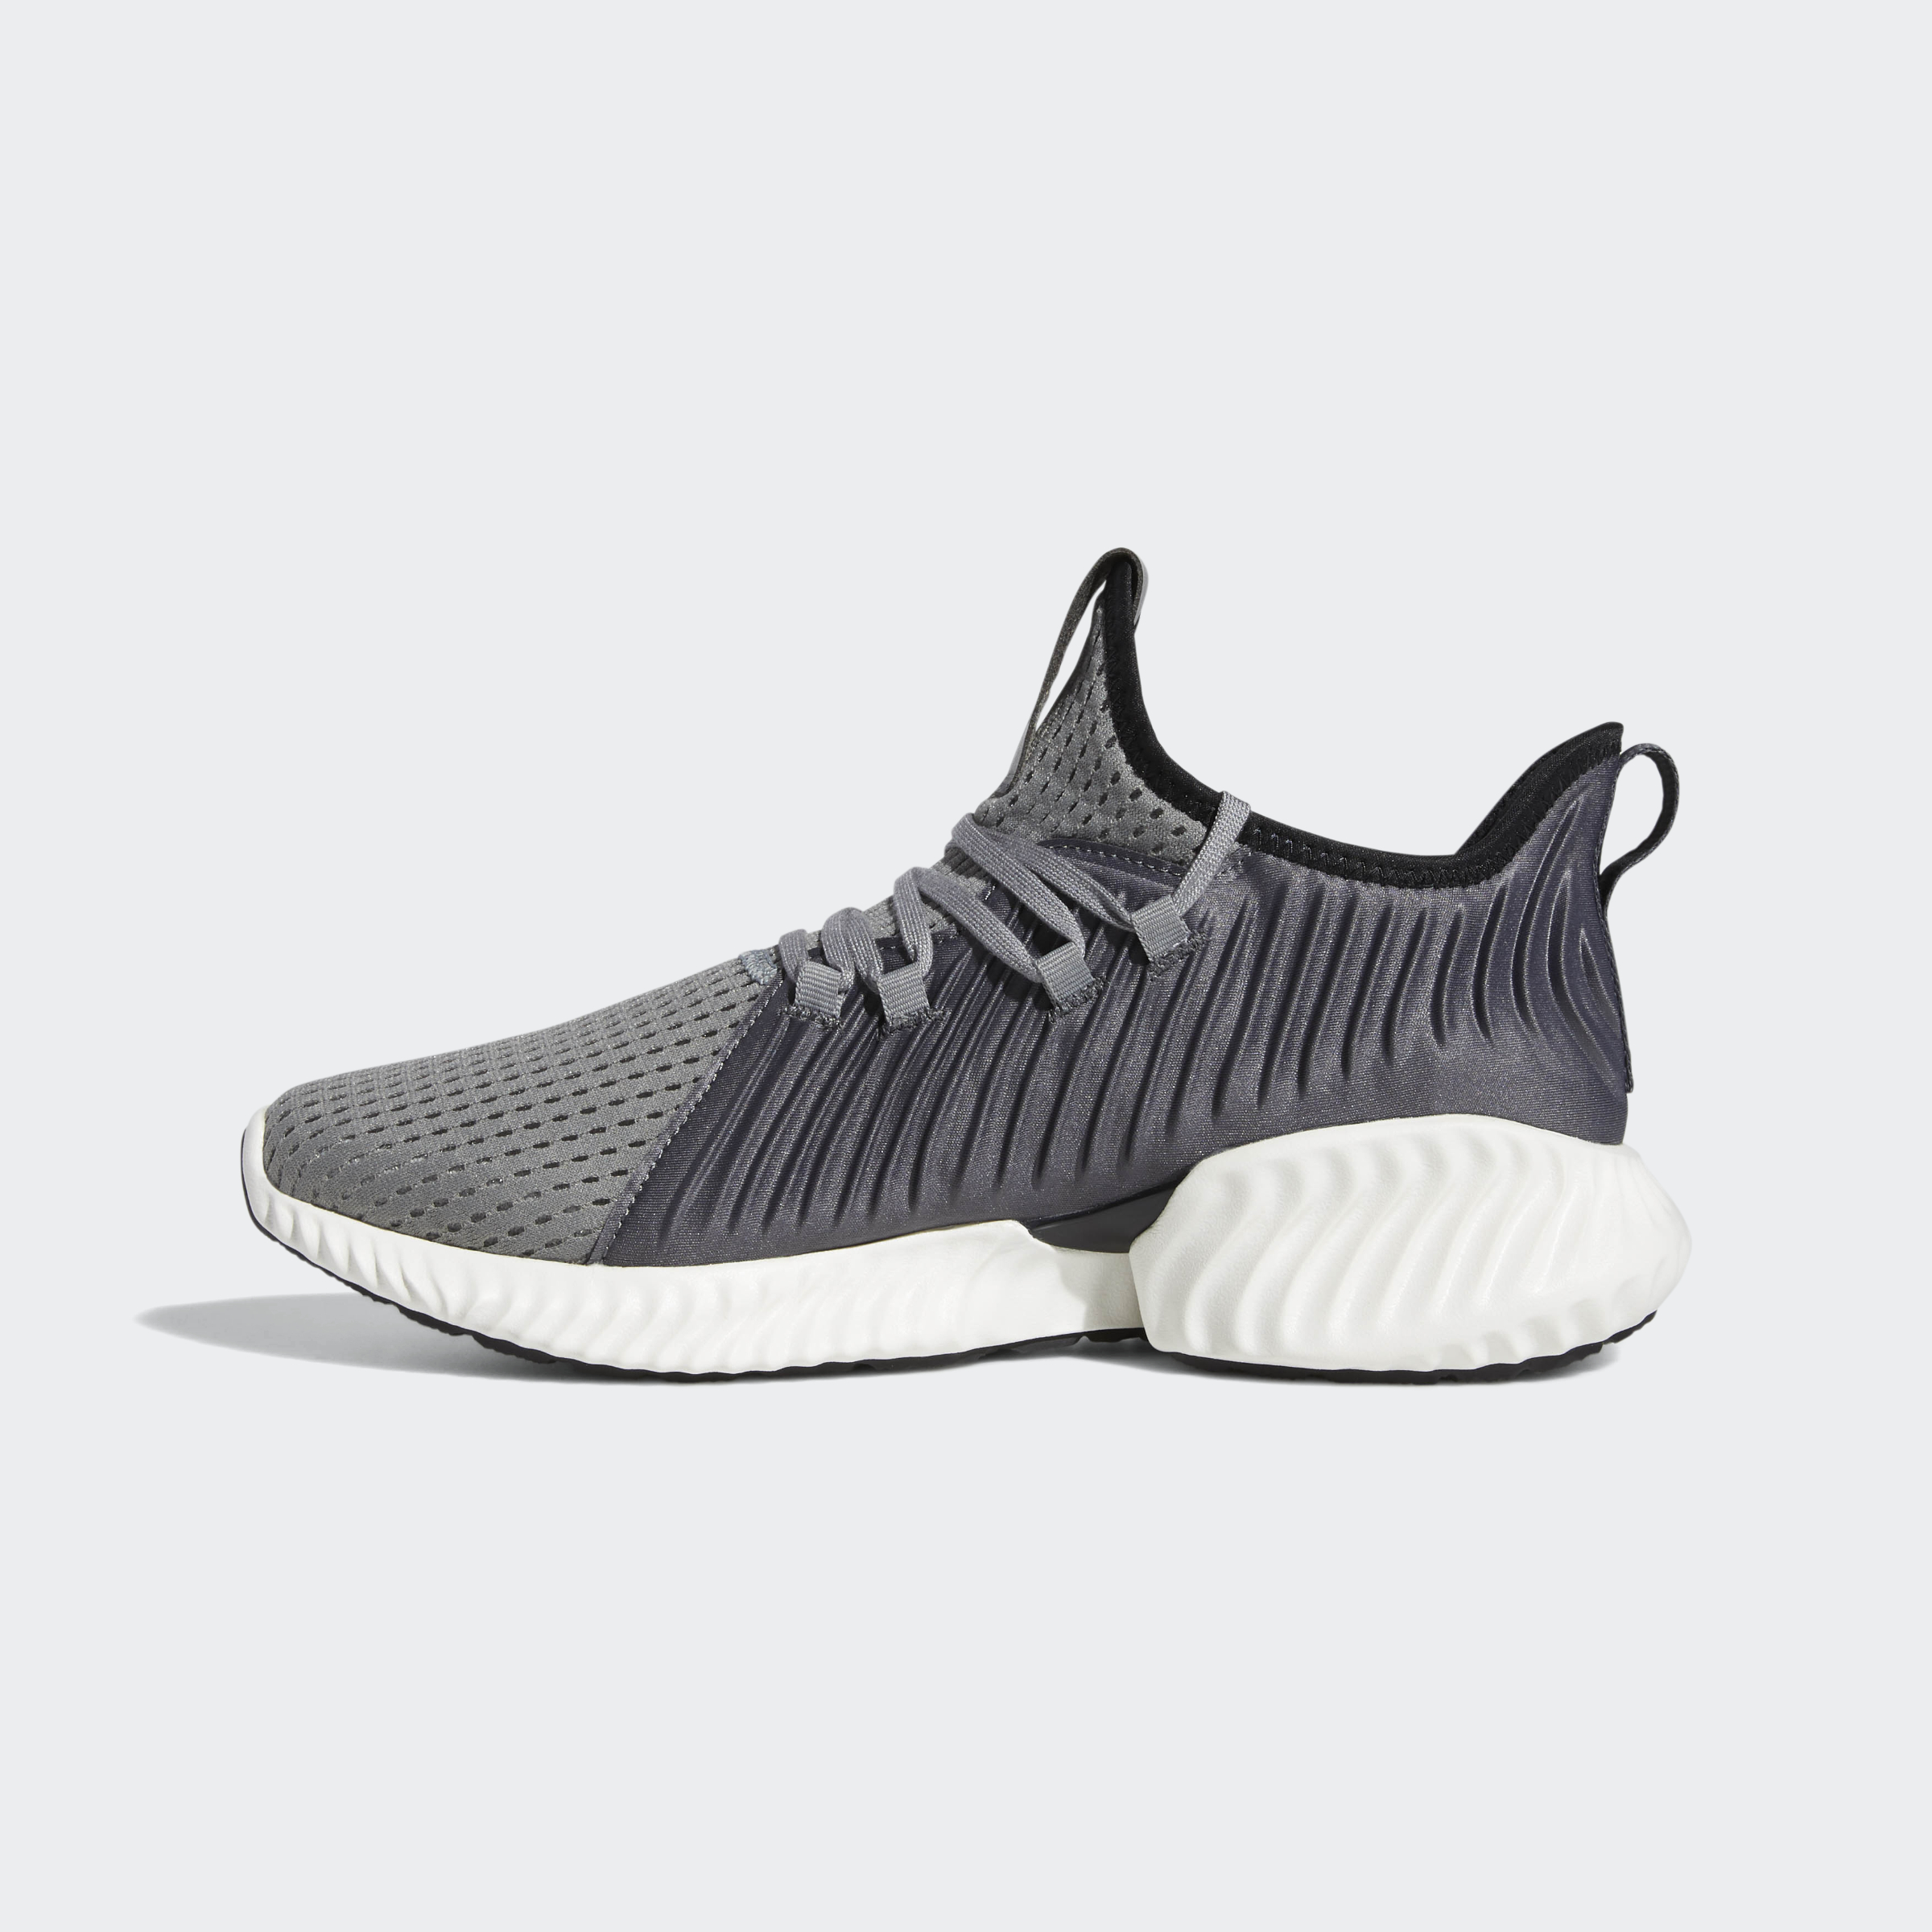 adidas-Alphabounce-Instinct-Clima-Shoes-Men-039-s-Athletic-amp-Sneakers miniature 11